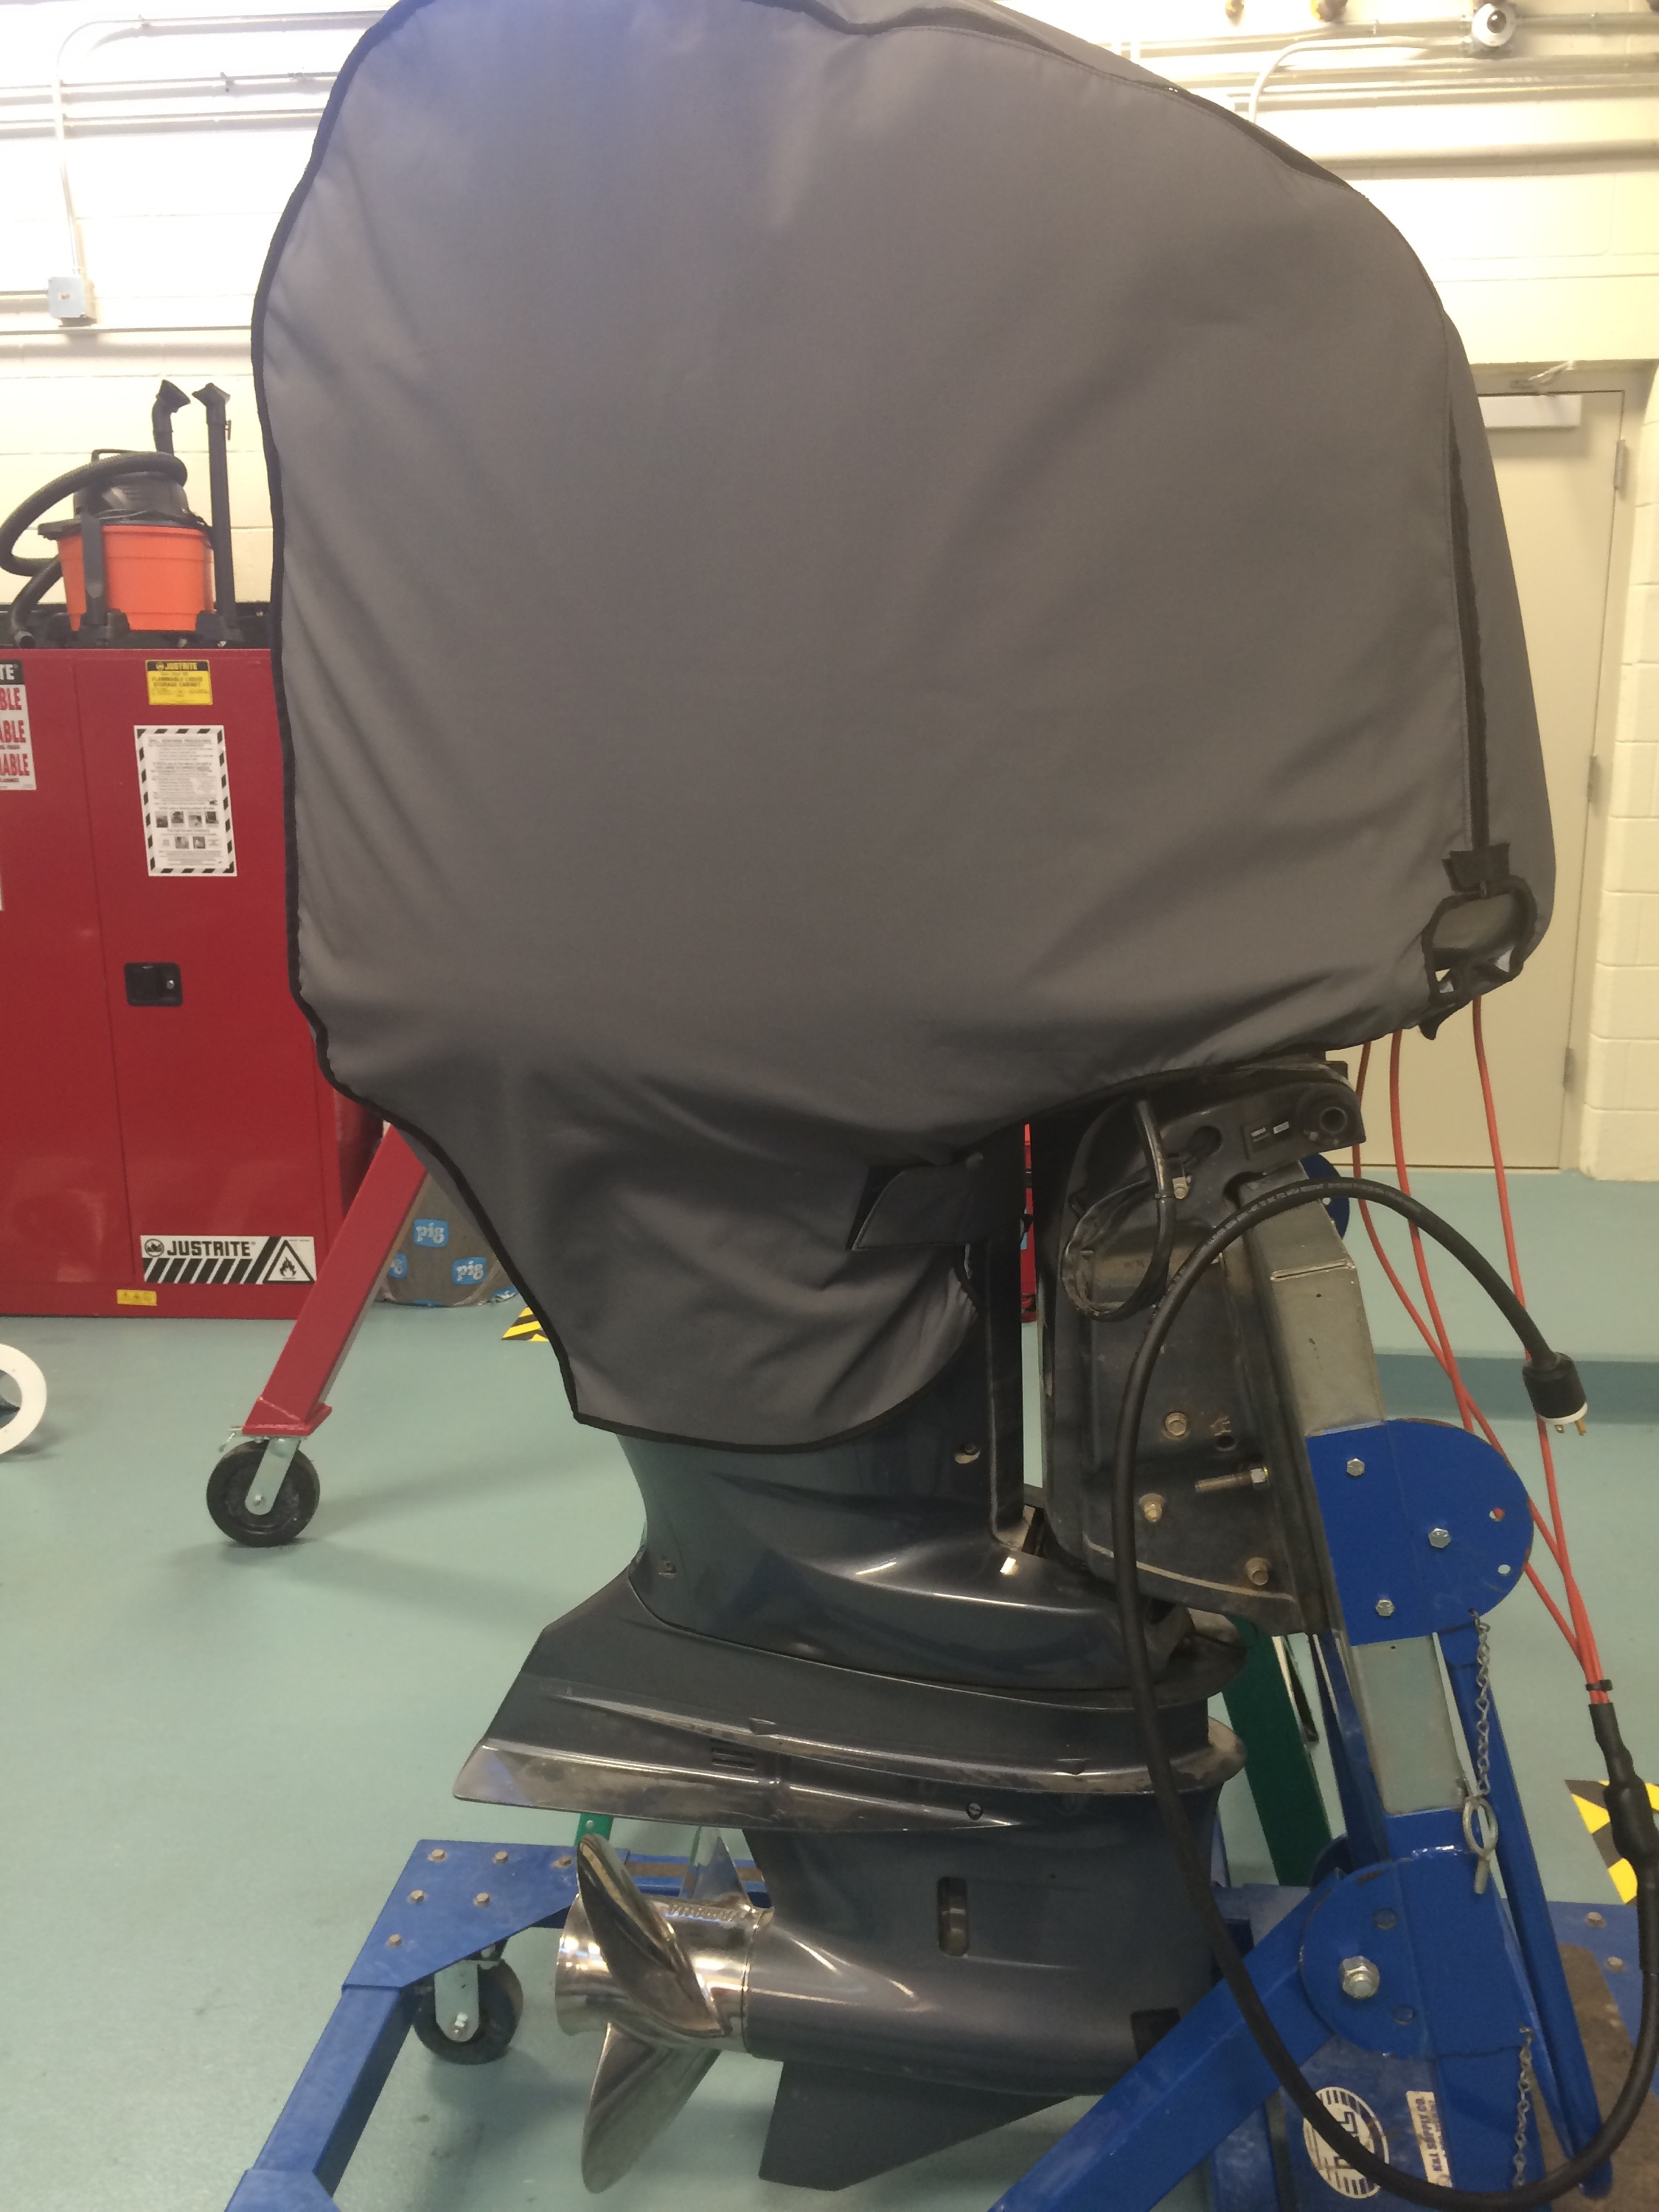 Outboard Motor Covers : Outboard covers accessories heated